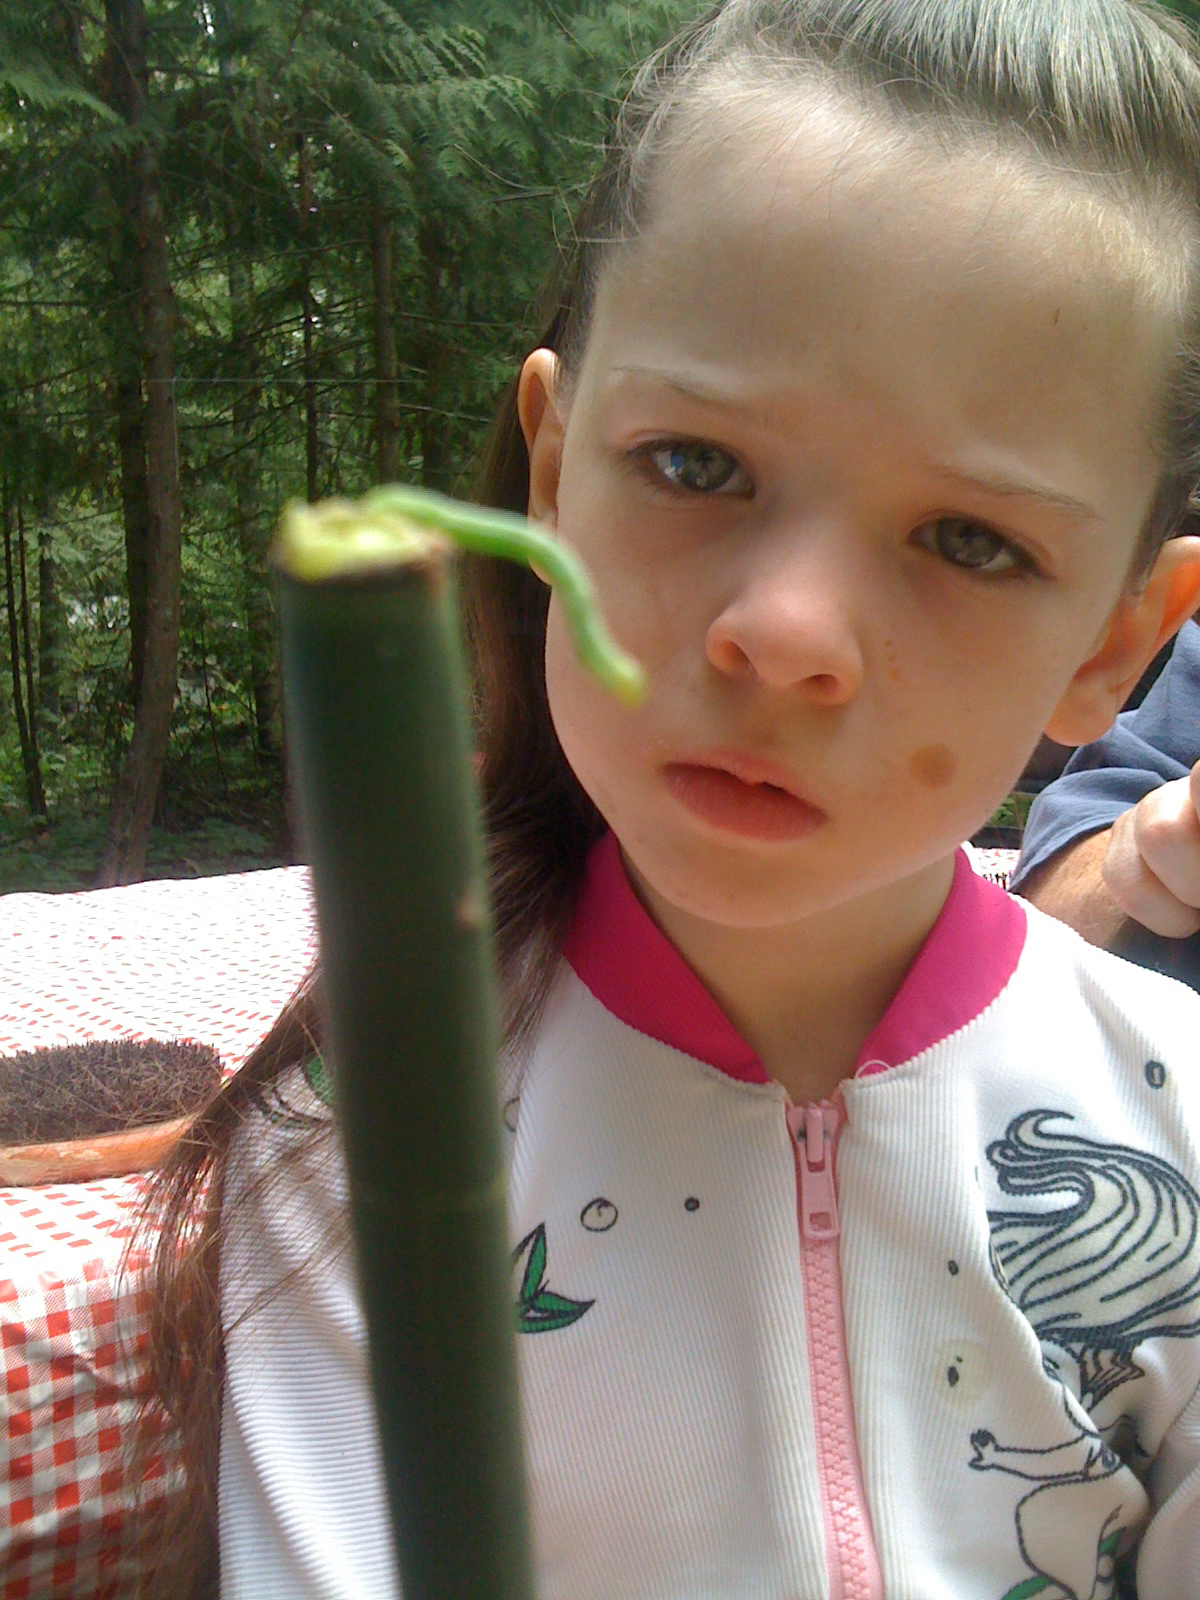 Grace and the Inch Worm